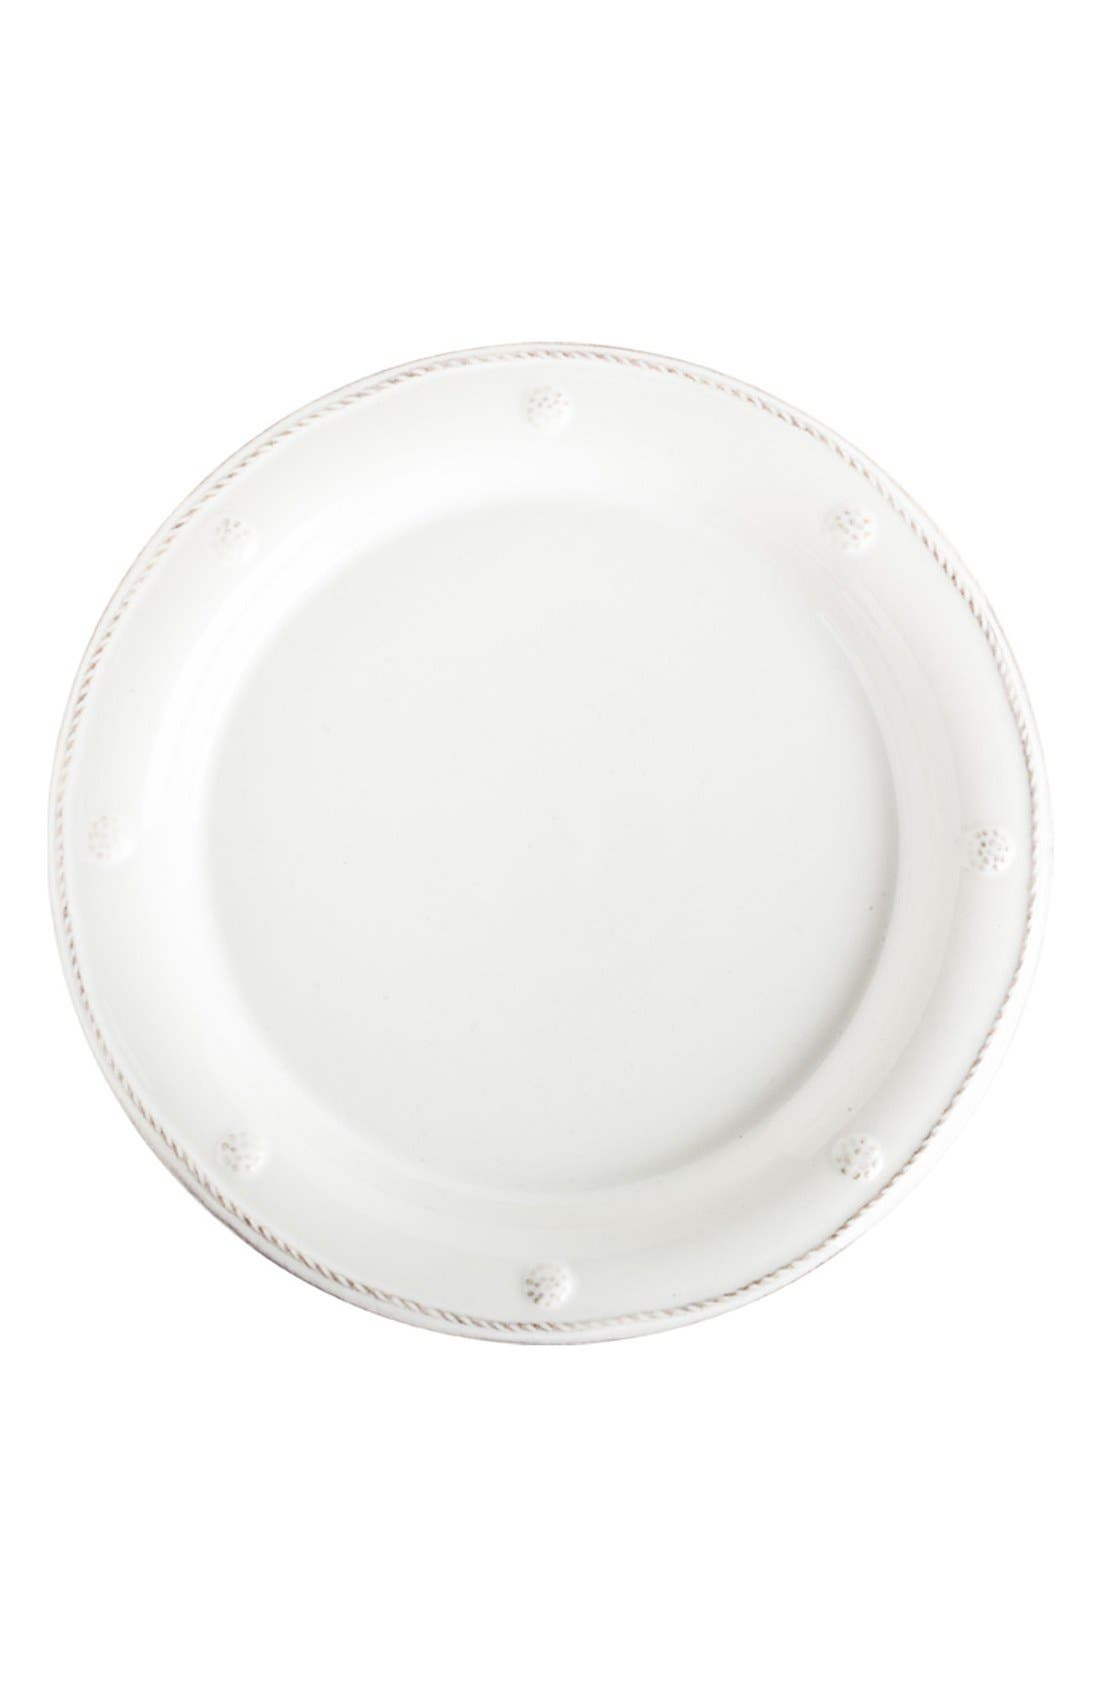 'Berry and Thread' Salad Plate,                         Main,                         color, Whitewash